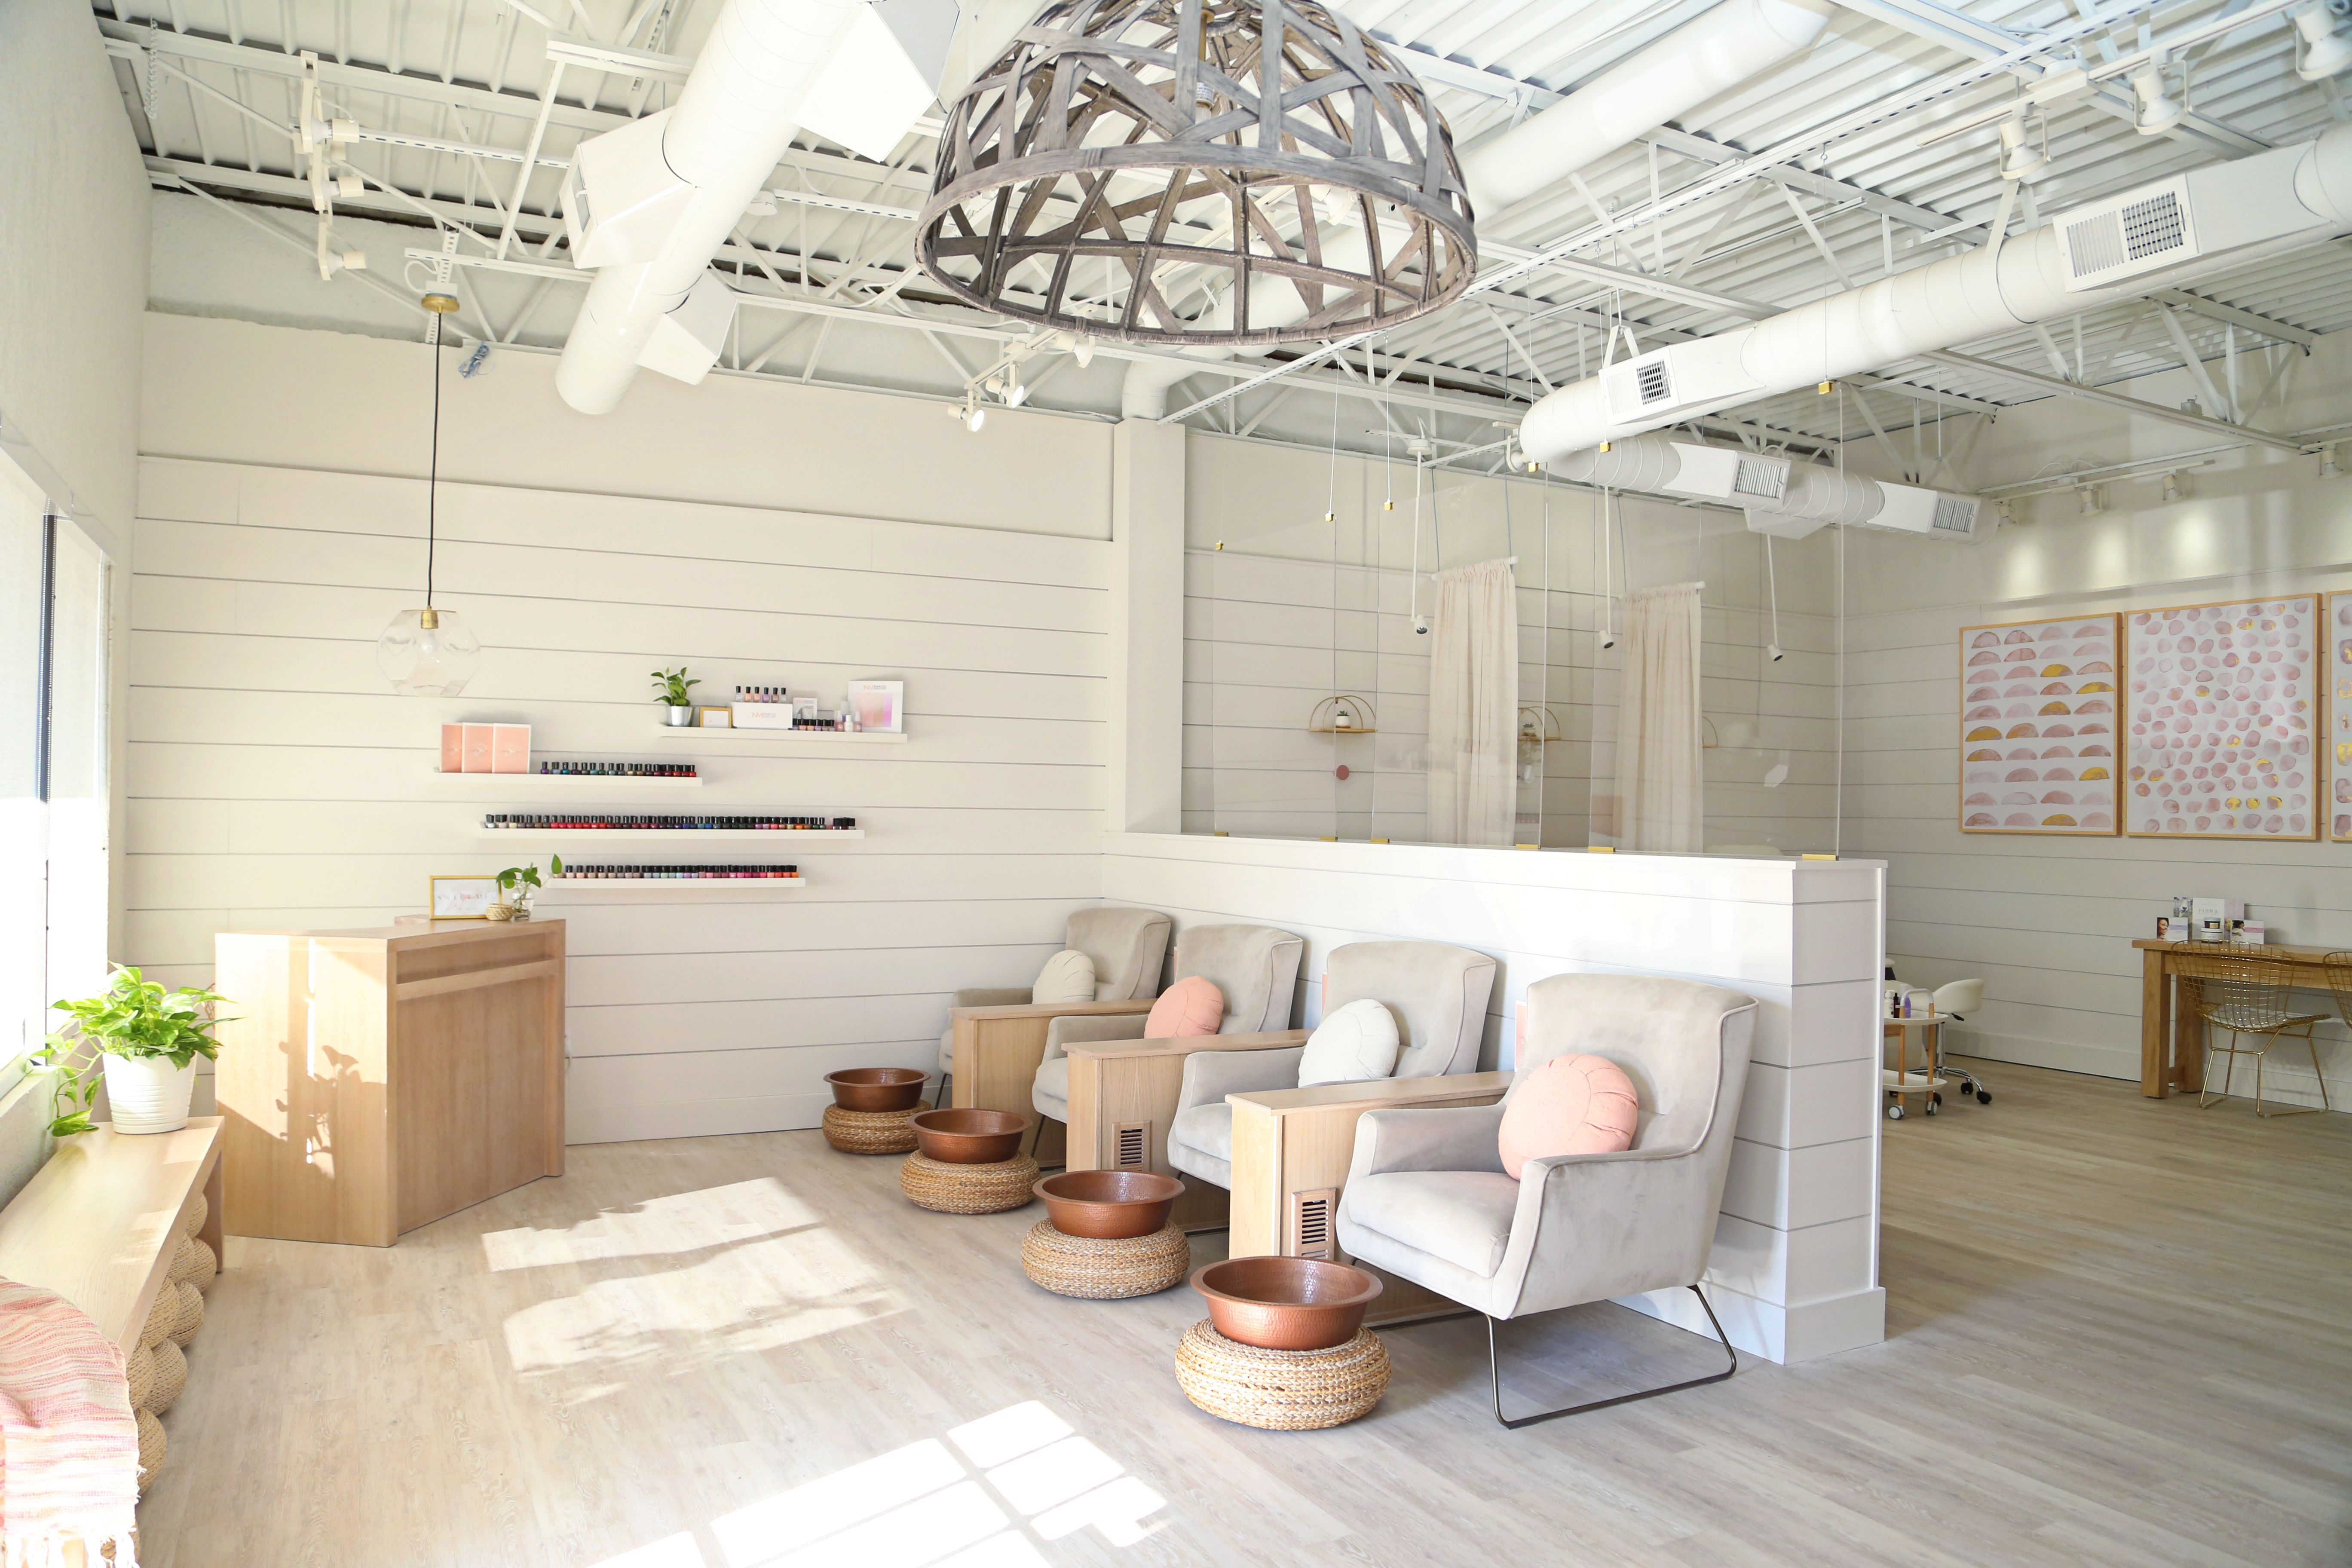 Sweet Mia Nail Spa The First Non Toxic Nail Spa In Oklahoma Parterre Flooring Systems Salon Interior Design Nail Salon Interior Design Spa Interior Design